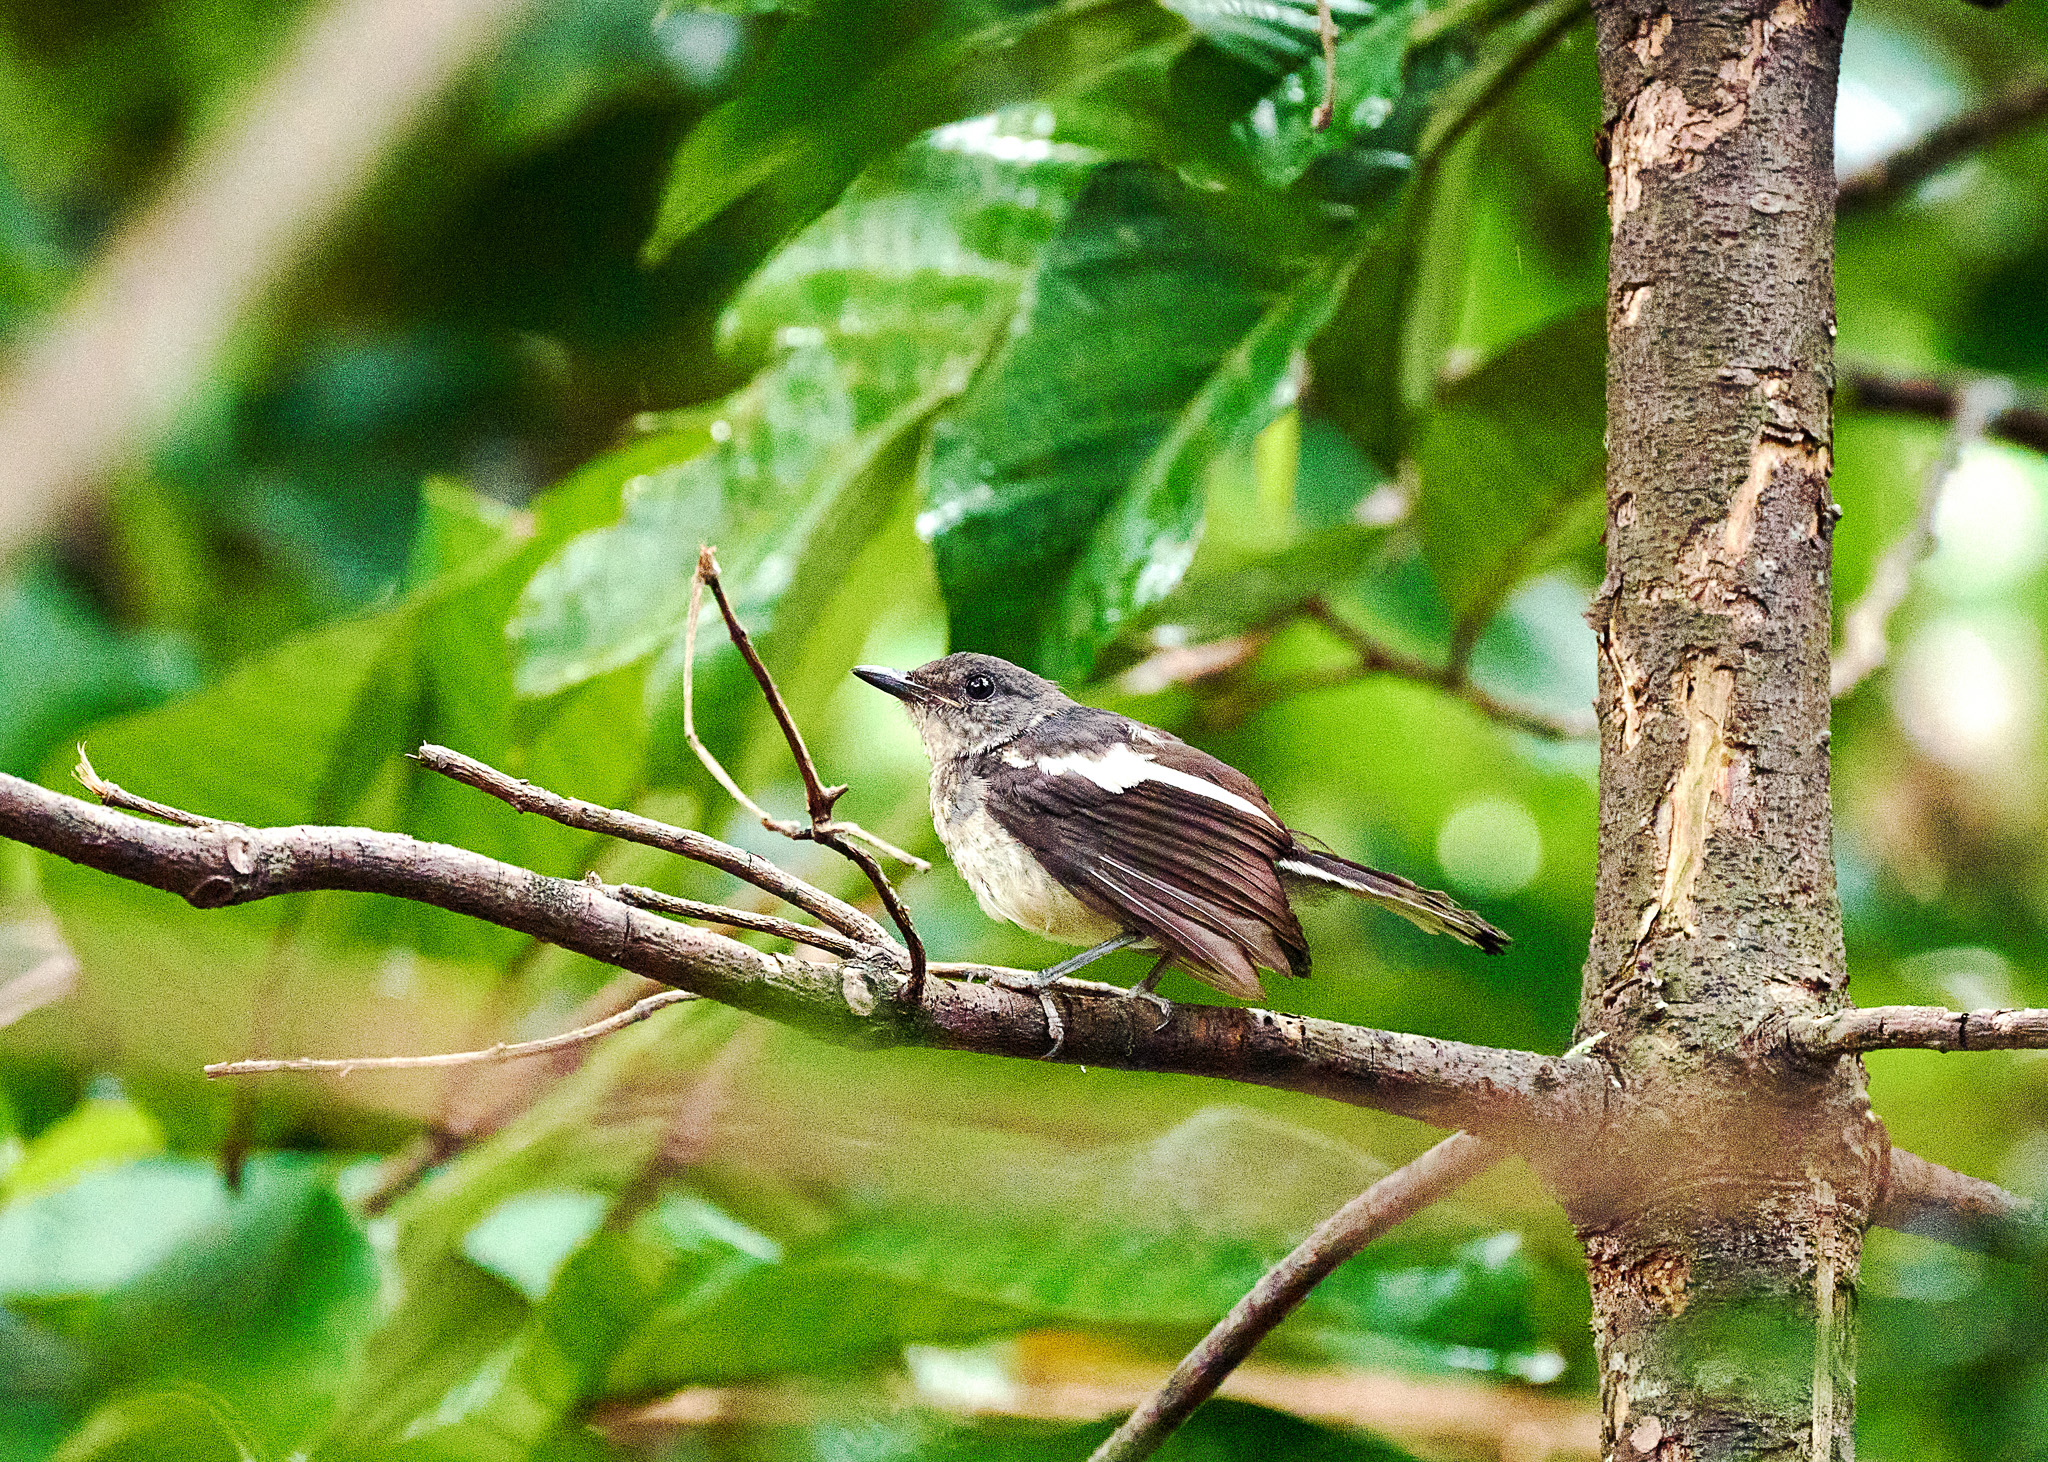 Streaked Bulbul at the Mount Faber Park, Singapore